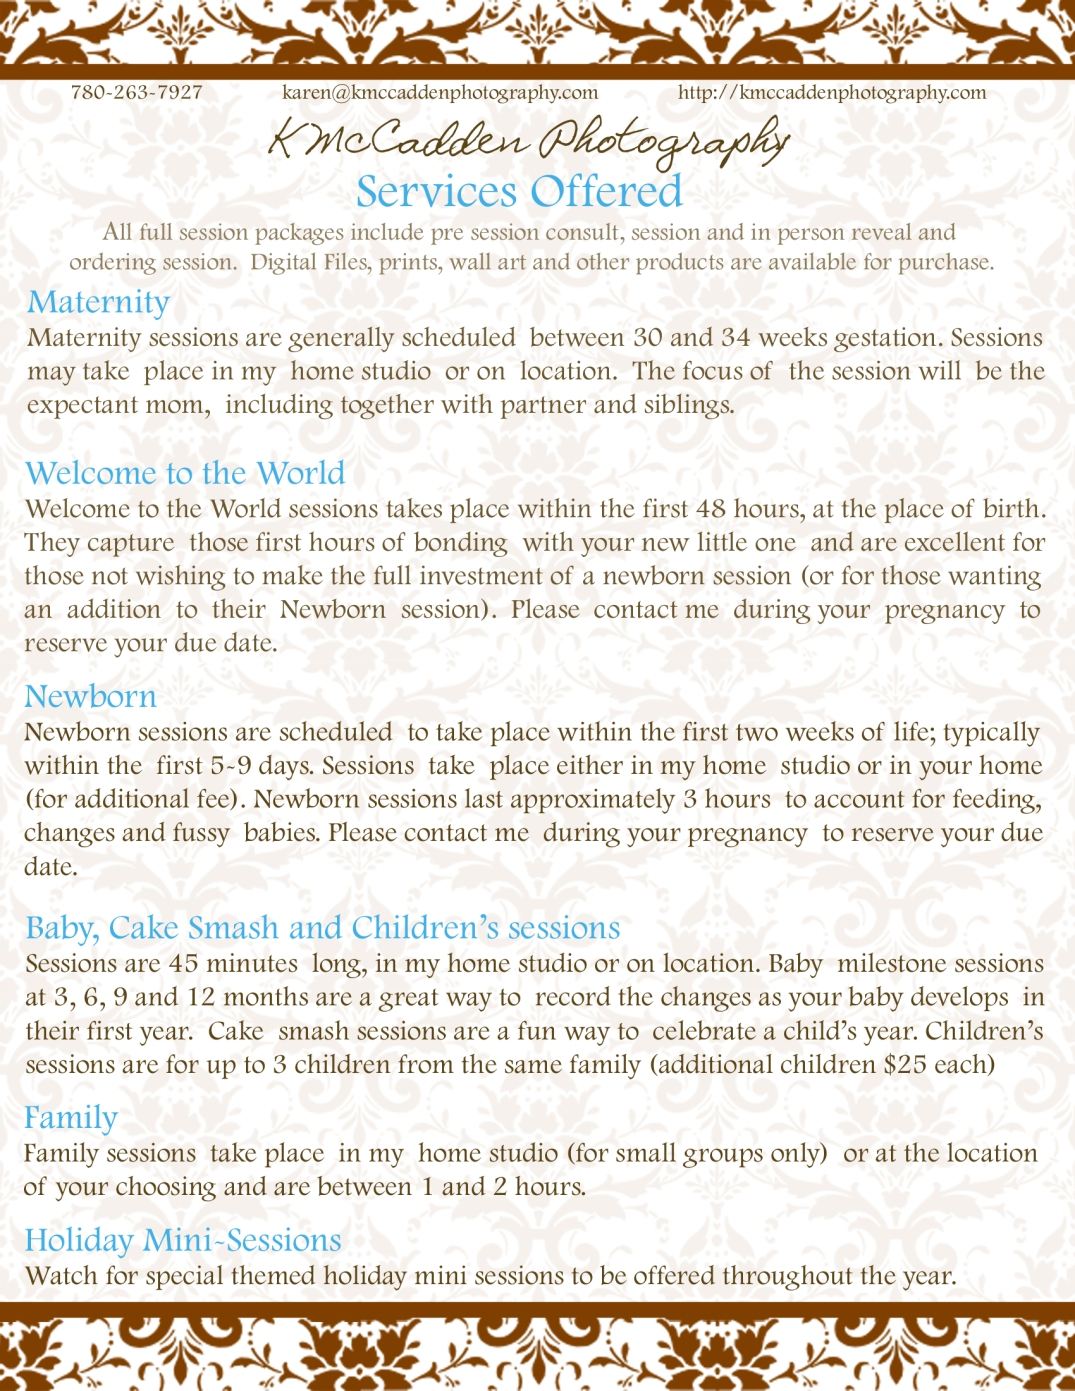 services guide for website and facebook